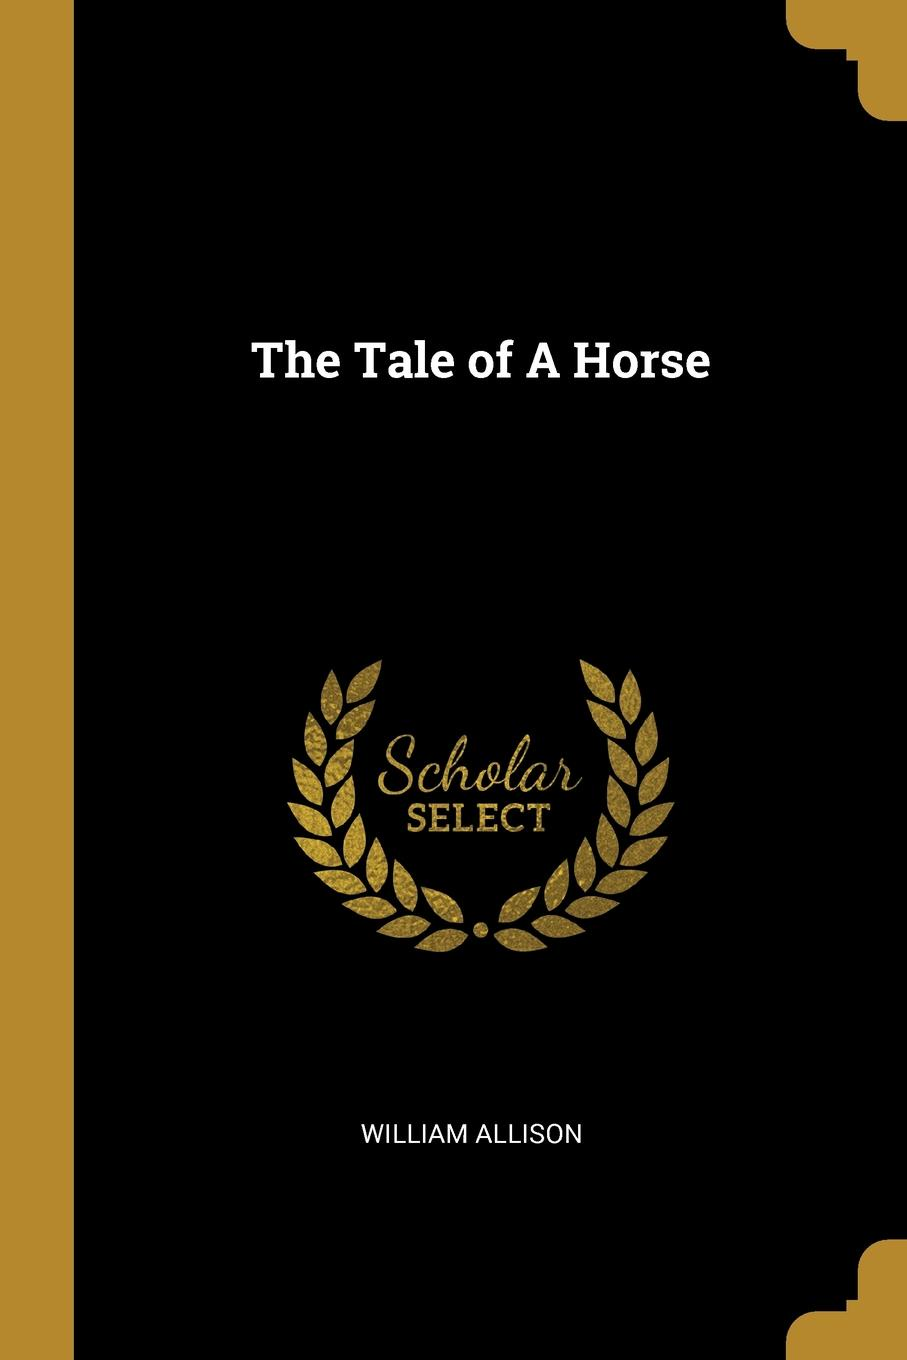 William Allison. The Tale of A Horse